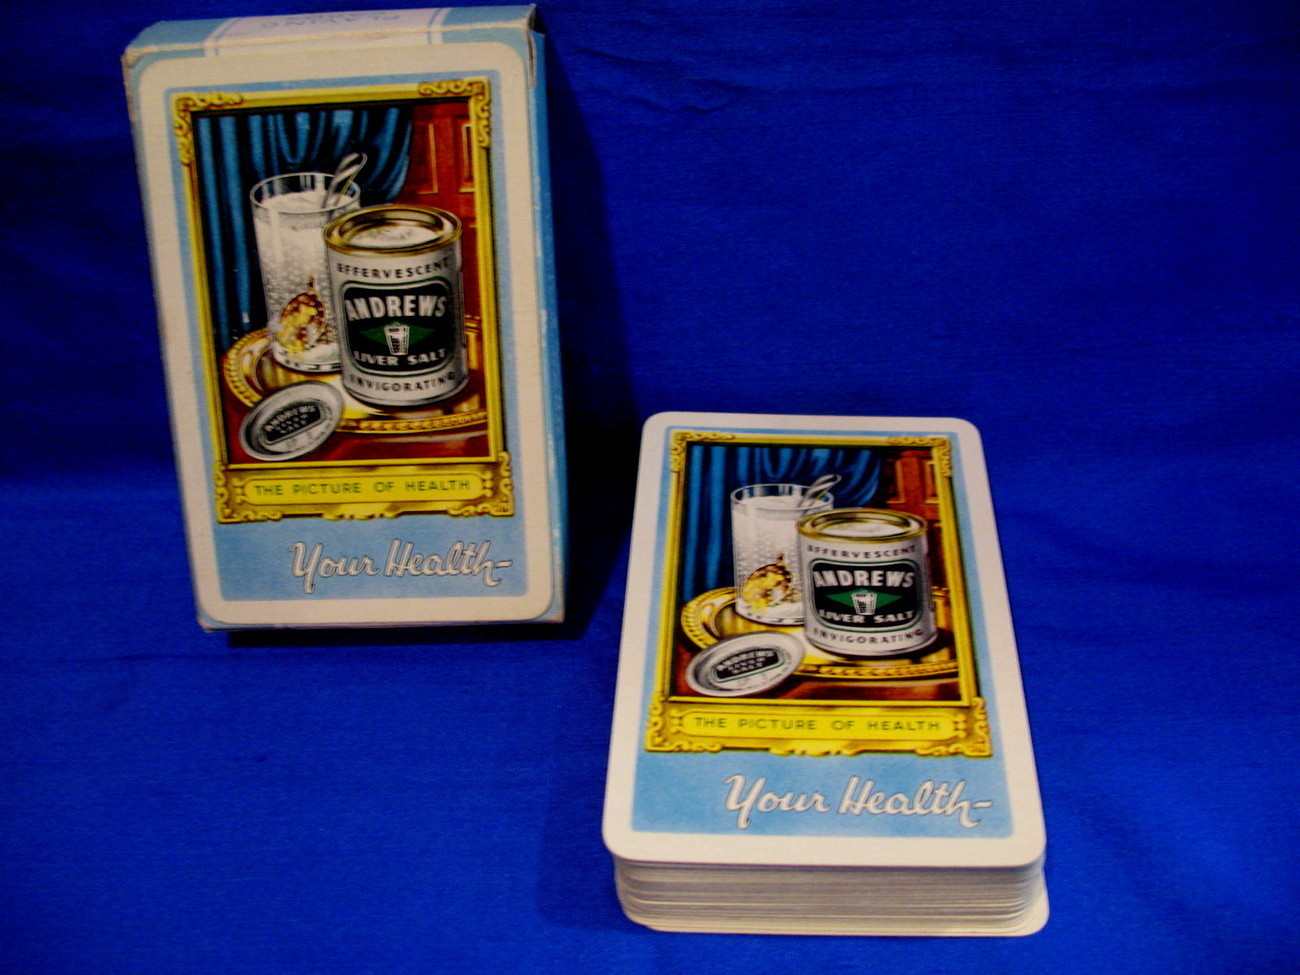 Primary image for Andrews Liver Salt Playing Cards Deck Souvenir Vintage Collectibles Blue Box